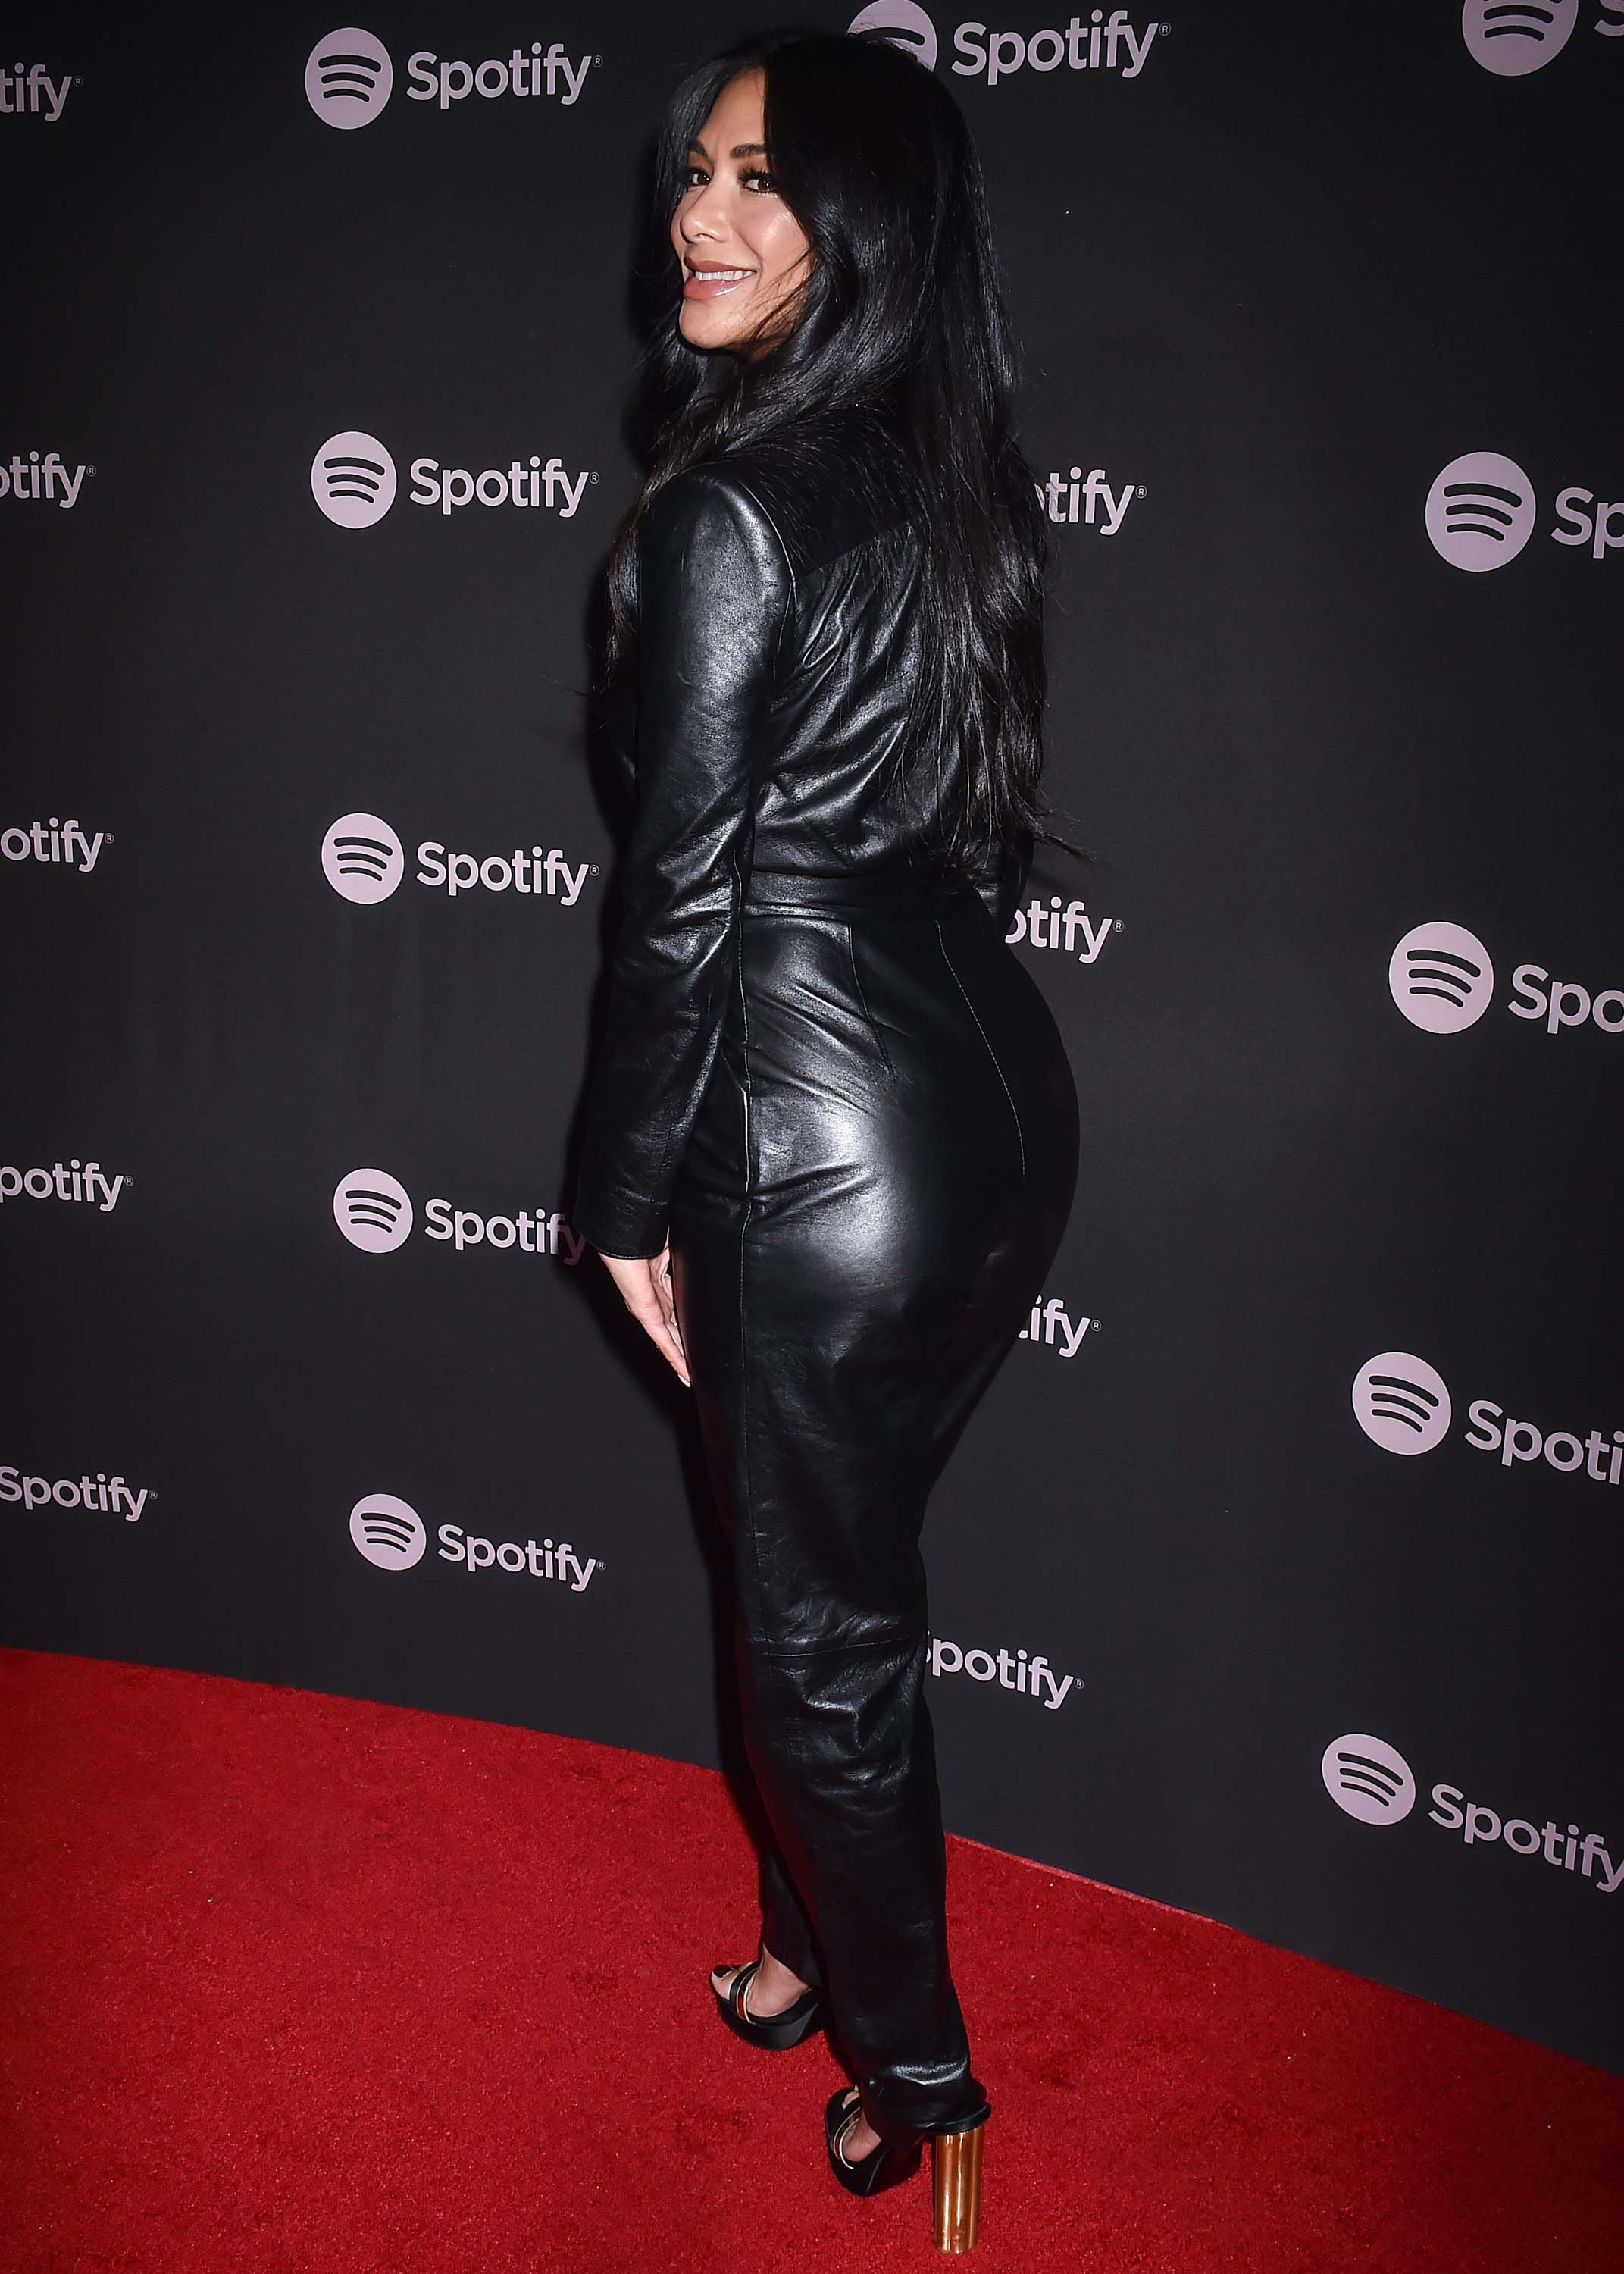 Nicole Scherzinger attends Spotify Best New Artist 2019 event